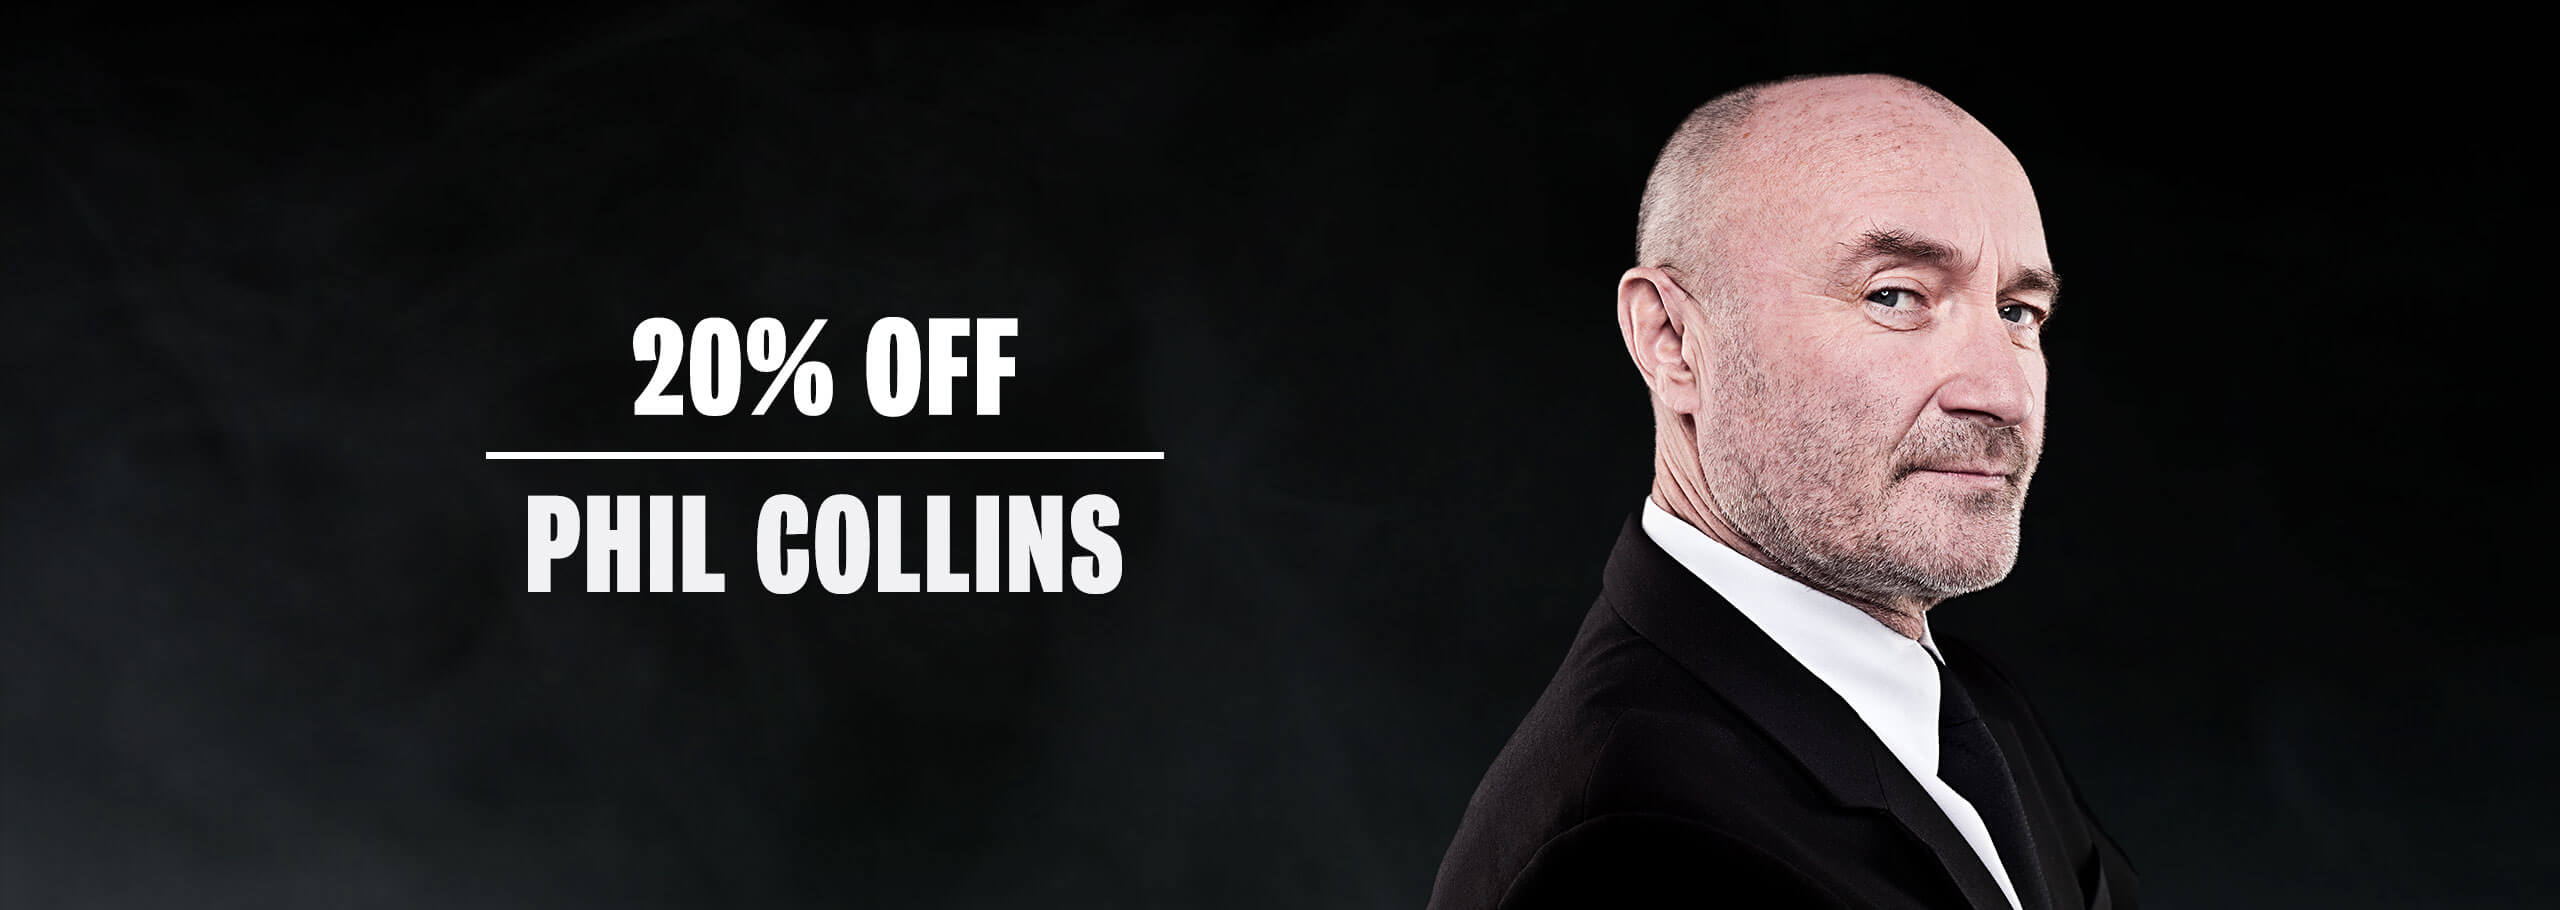 Phile colins sale! 20%